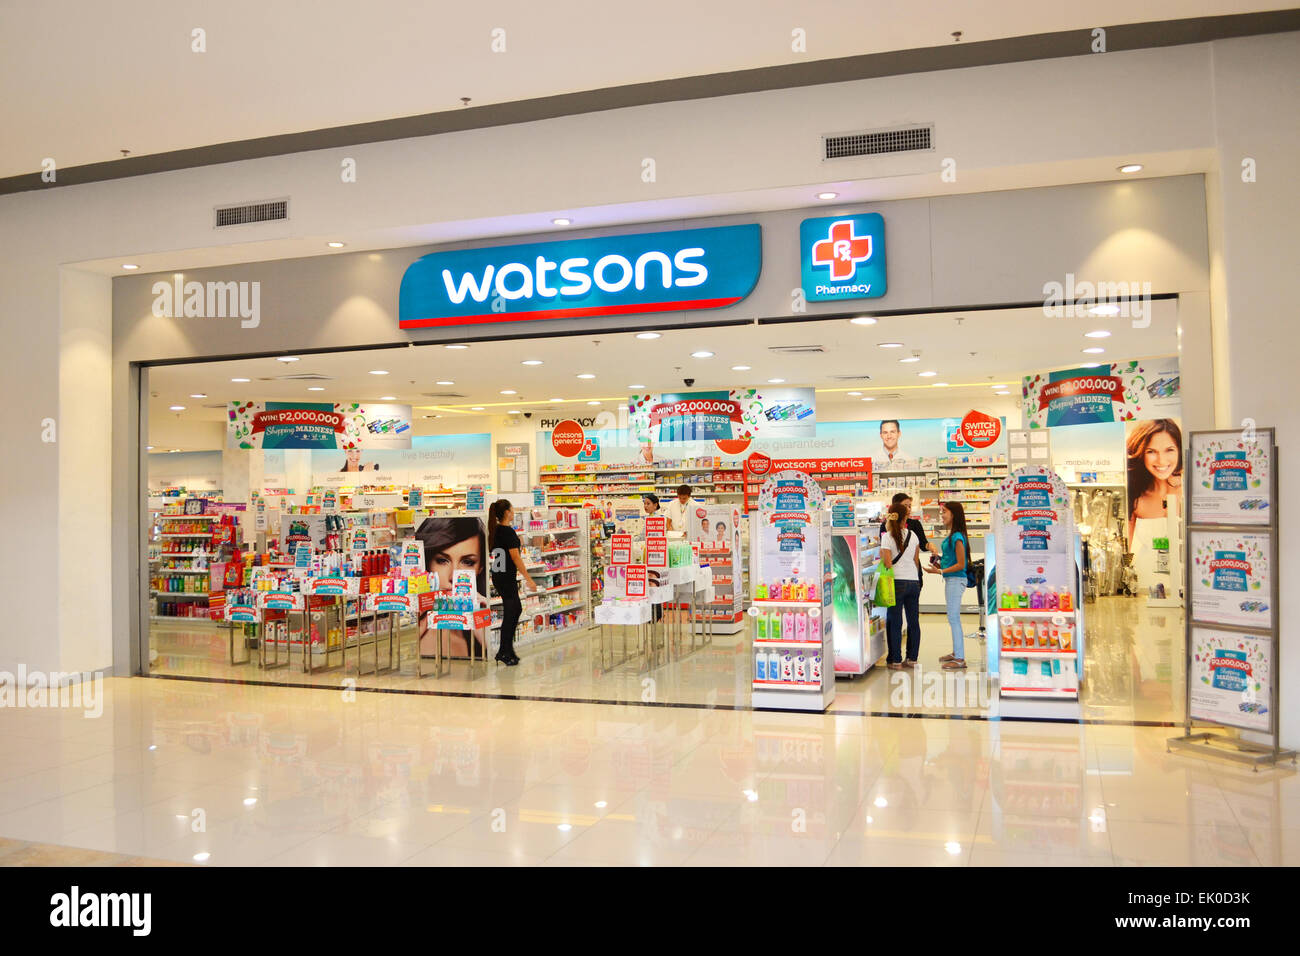 Watsons personal care store is one of the most famous health & beauty care stores in the far east since 1828. - Stock Image